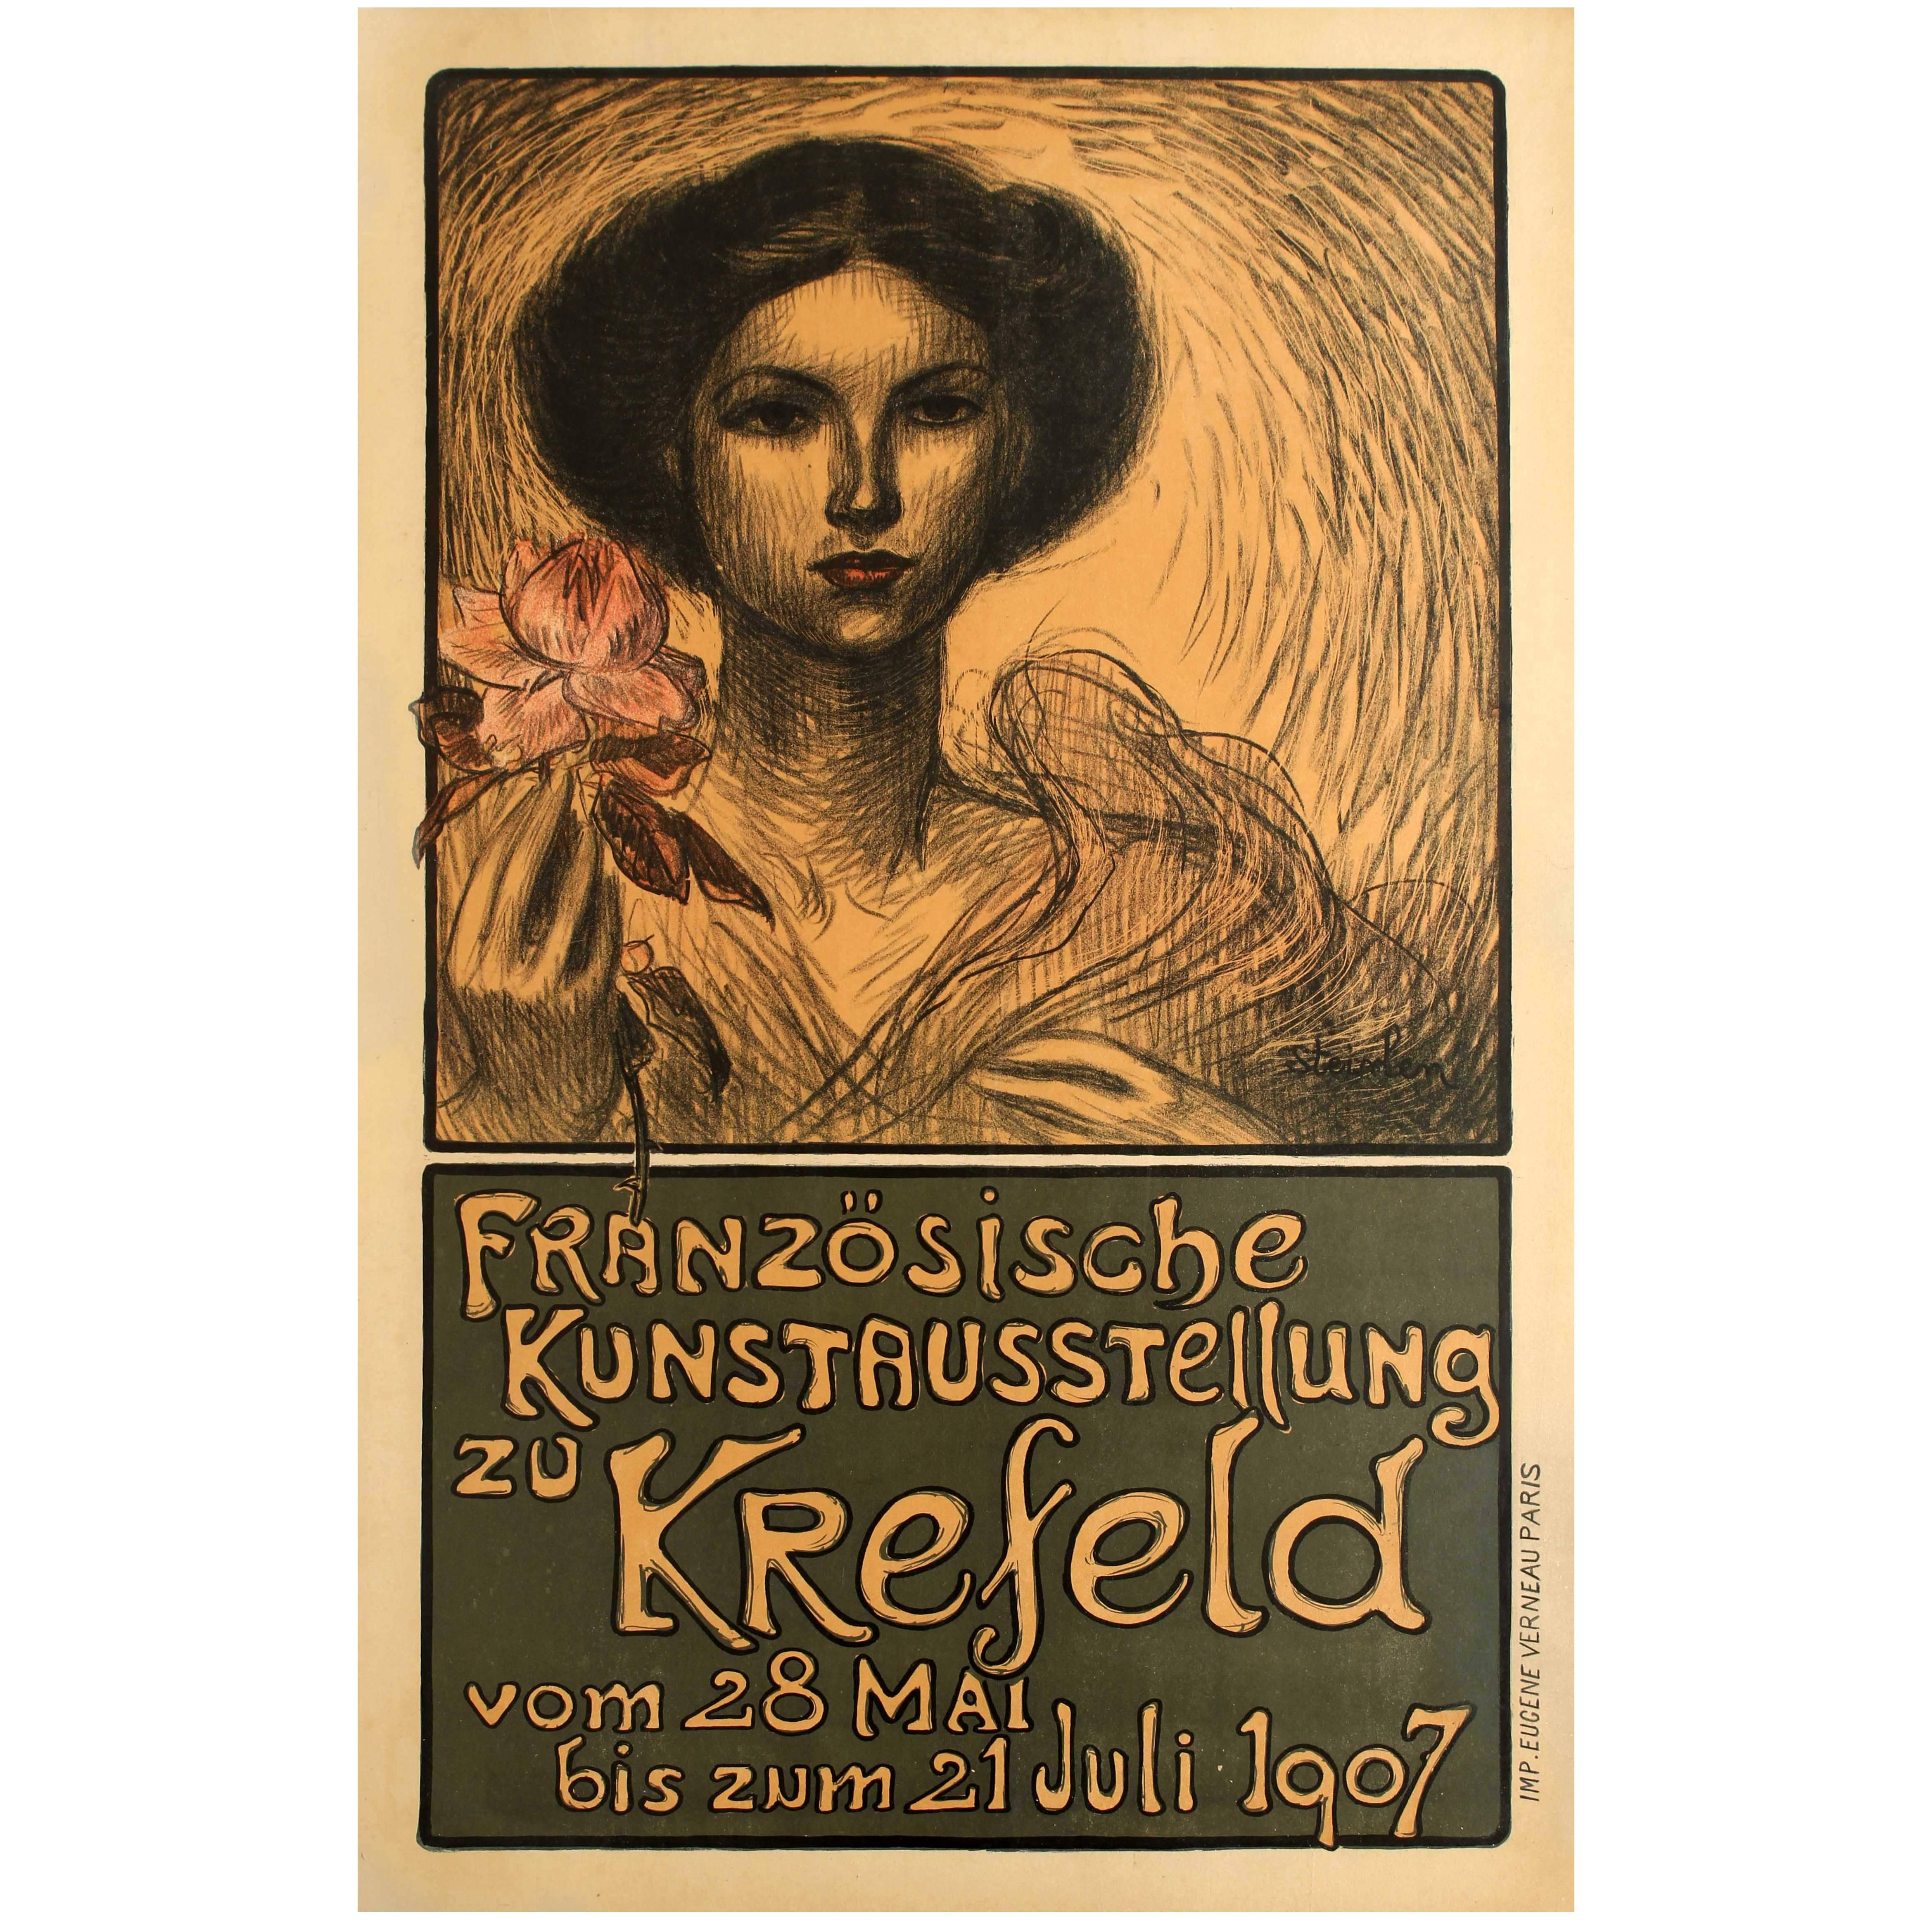 Original Antique Art Nouveau Poster for a French Art Exhibition in Krefeld